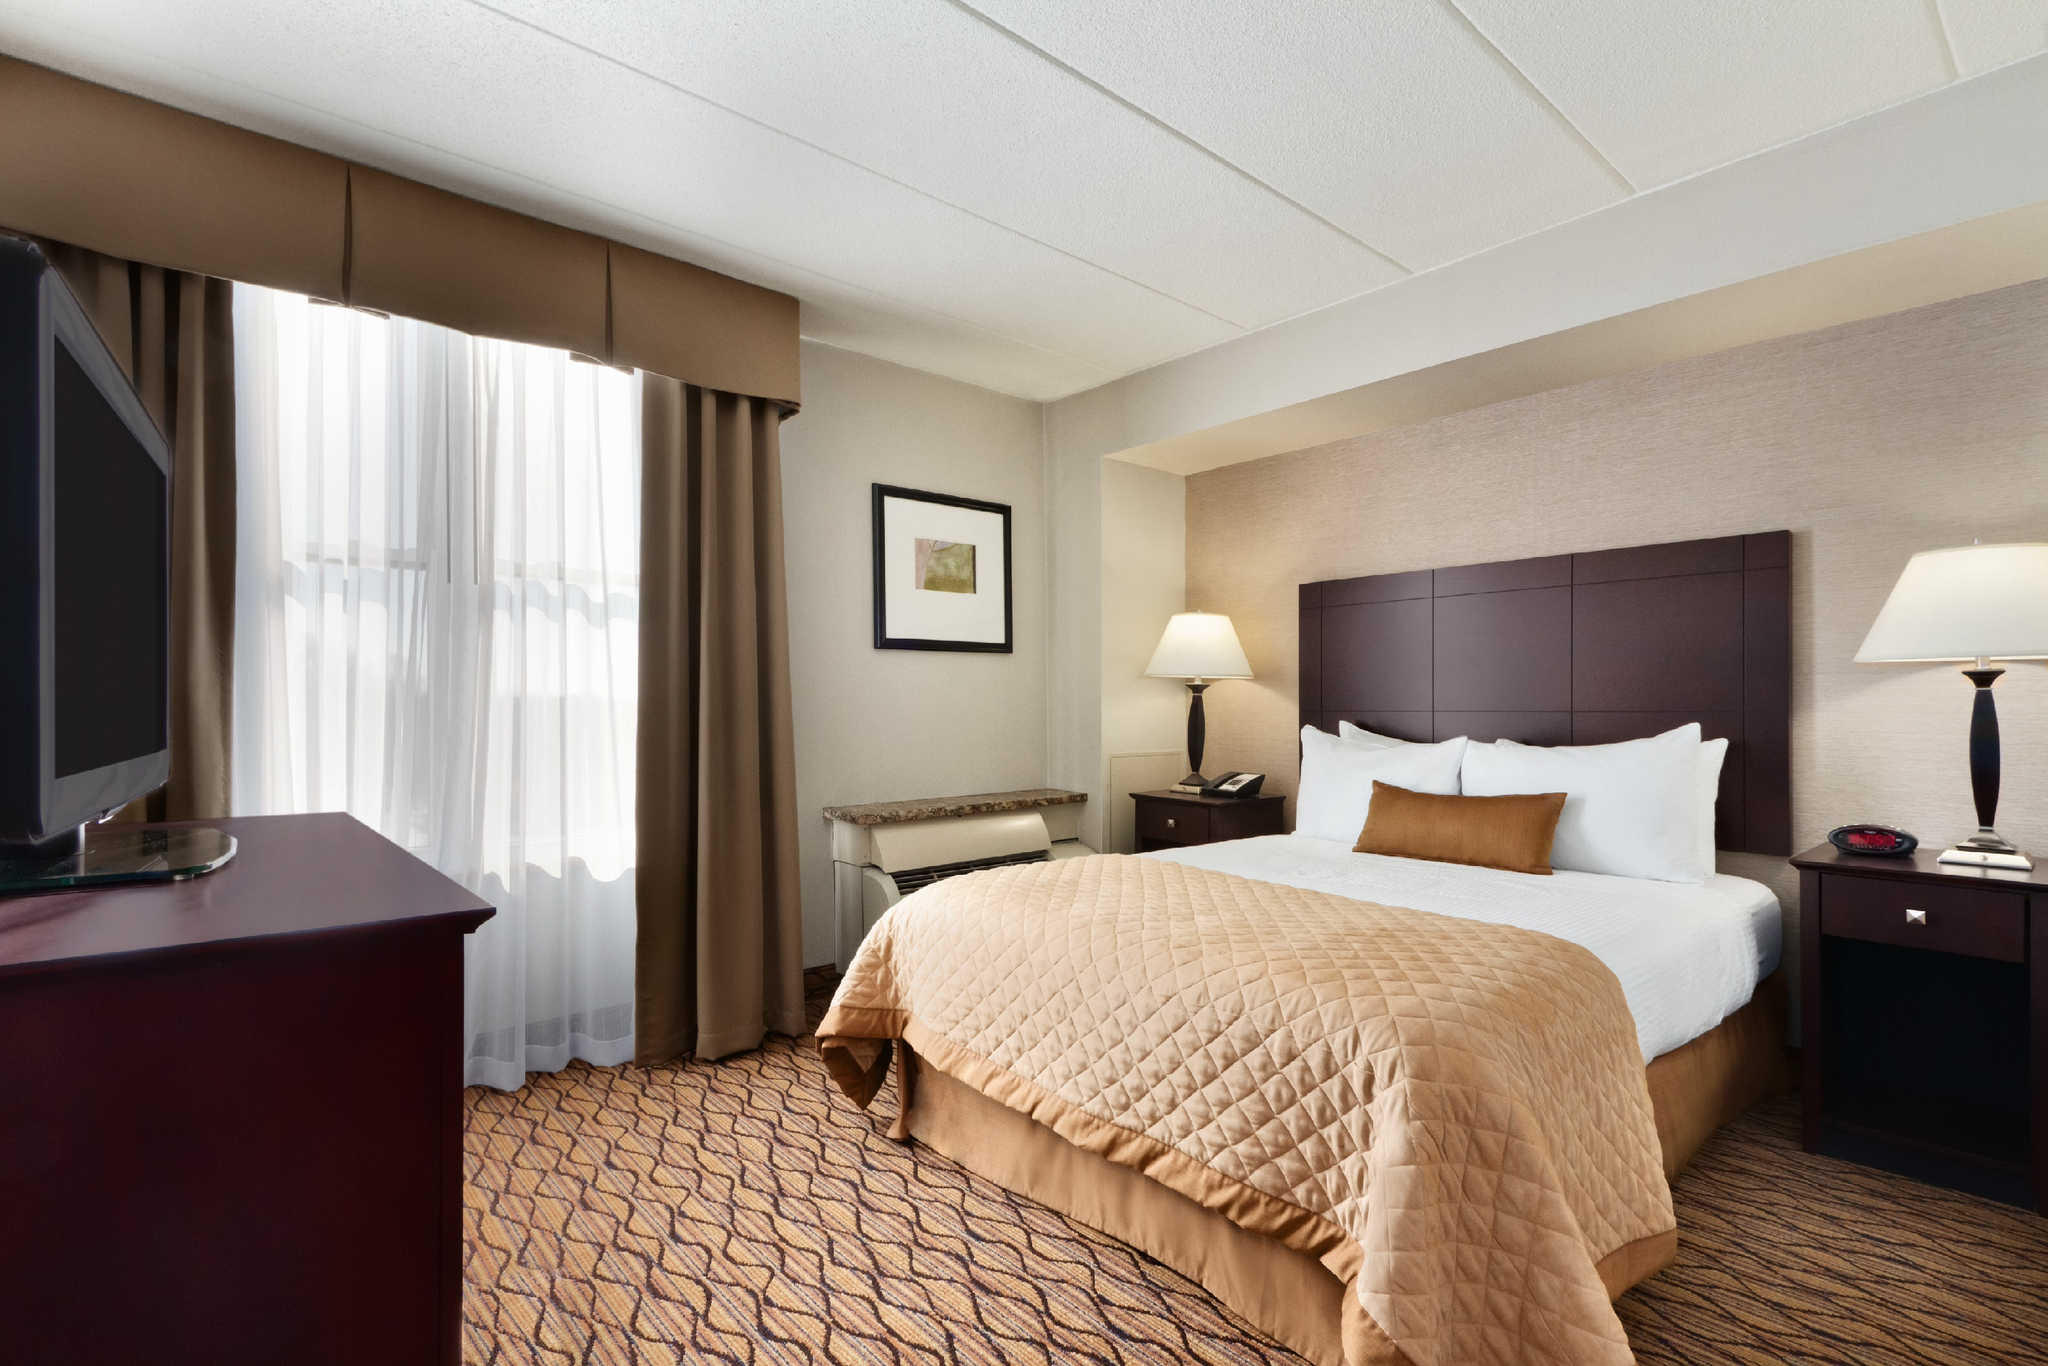 Clarion Hotel image 2